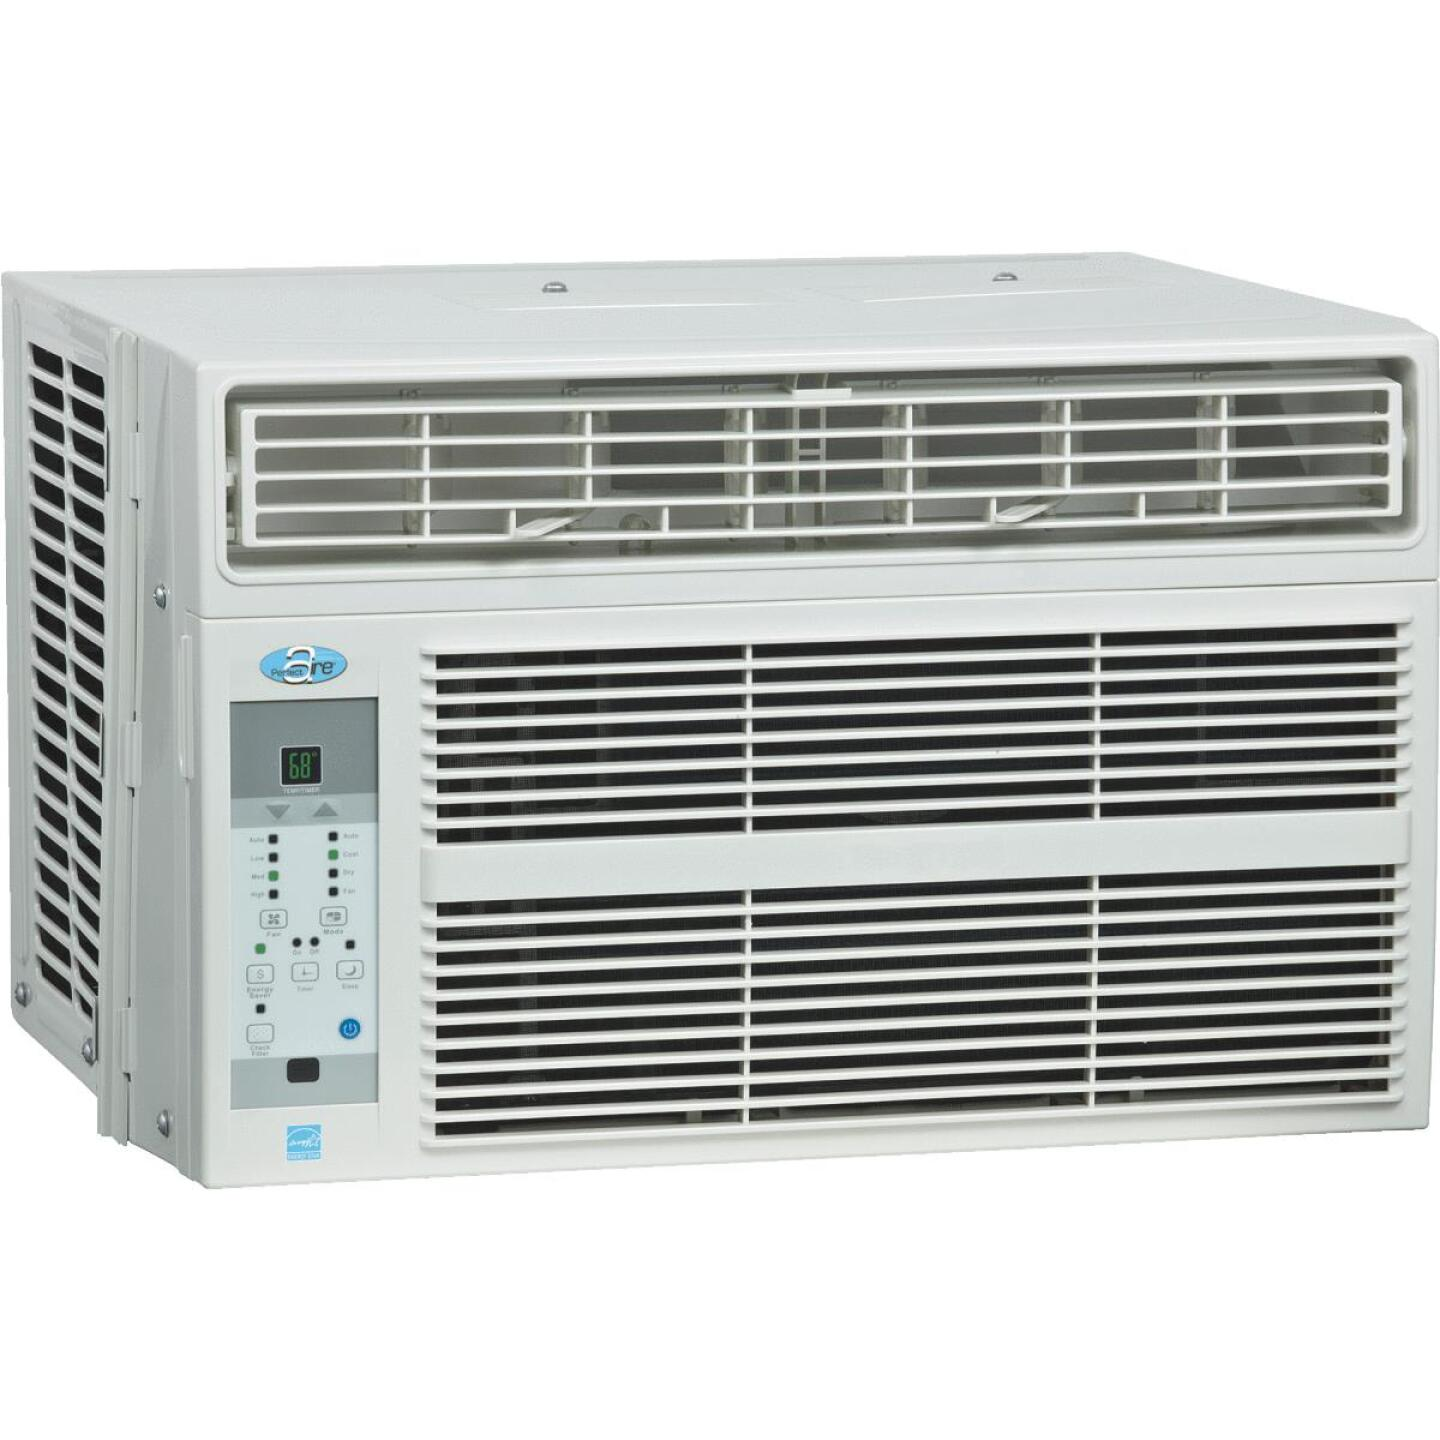 Perfect Aire 6000 BTU 250 Sq. Ft. Window Air Conditioner Image 1